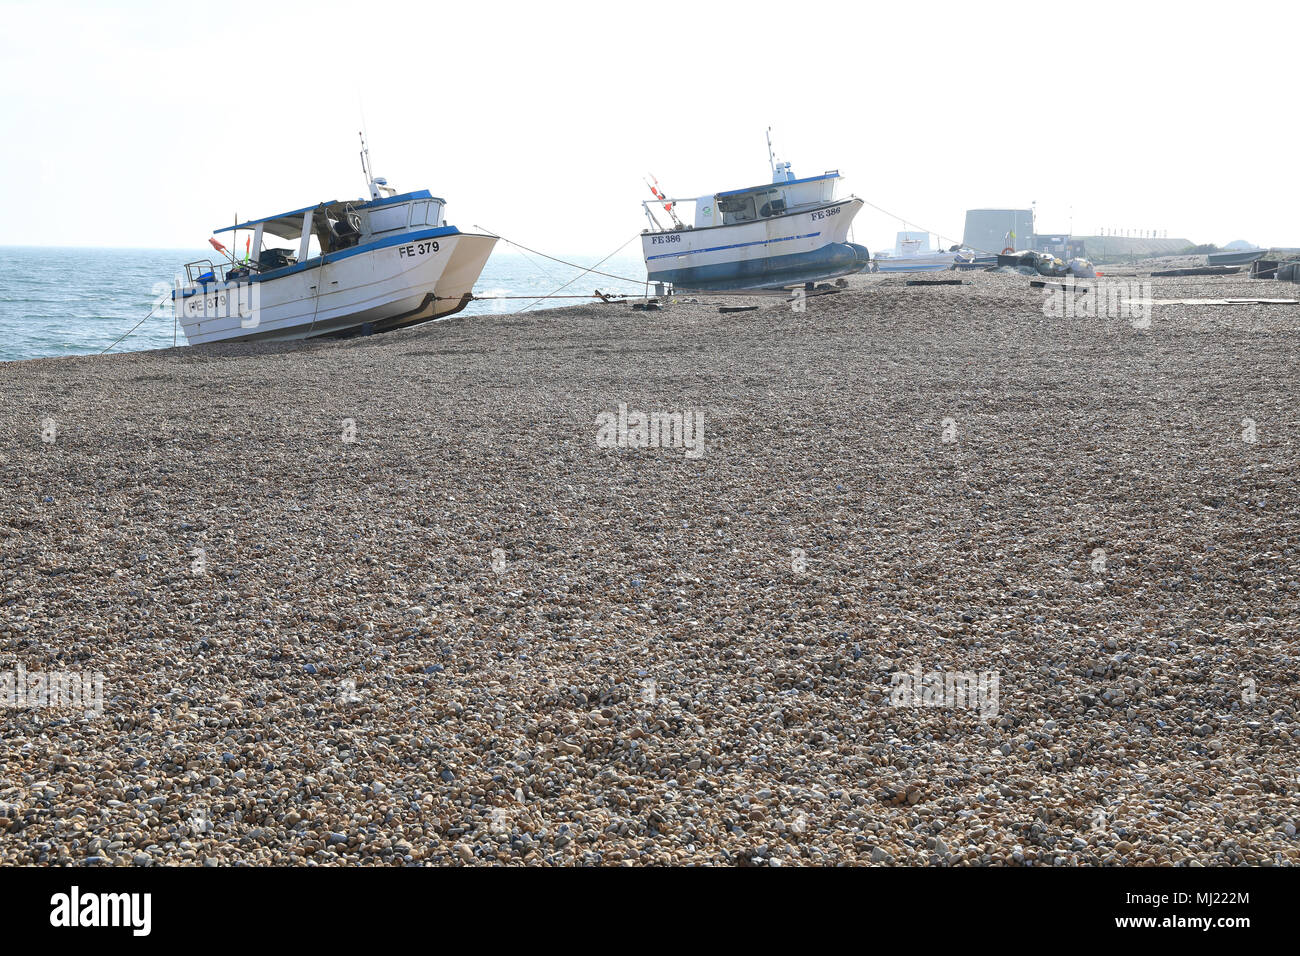 Fishing boats on the pebble beach in Hythe, near Folkestone, Kent, UK - Stock Image